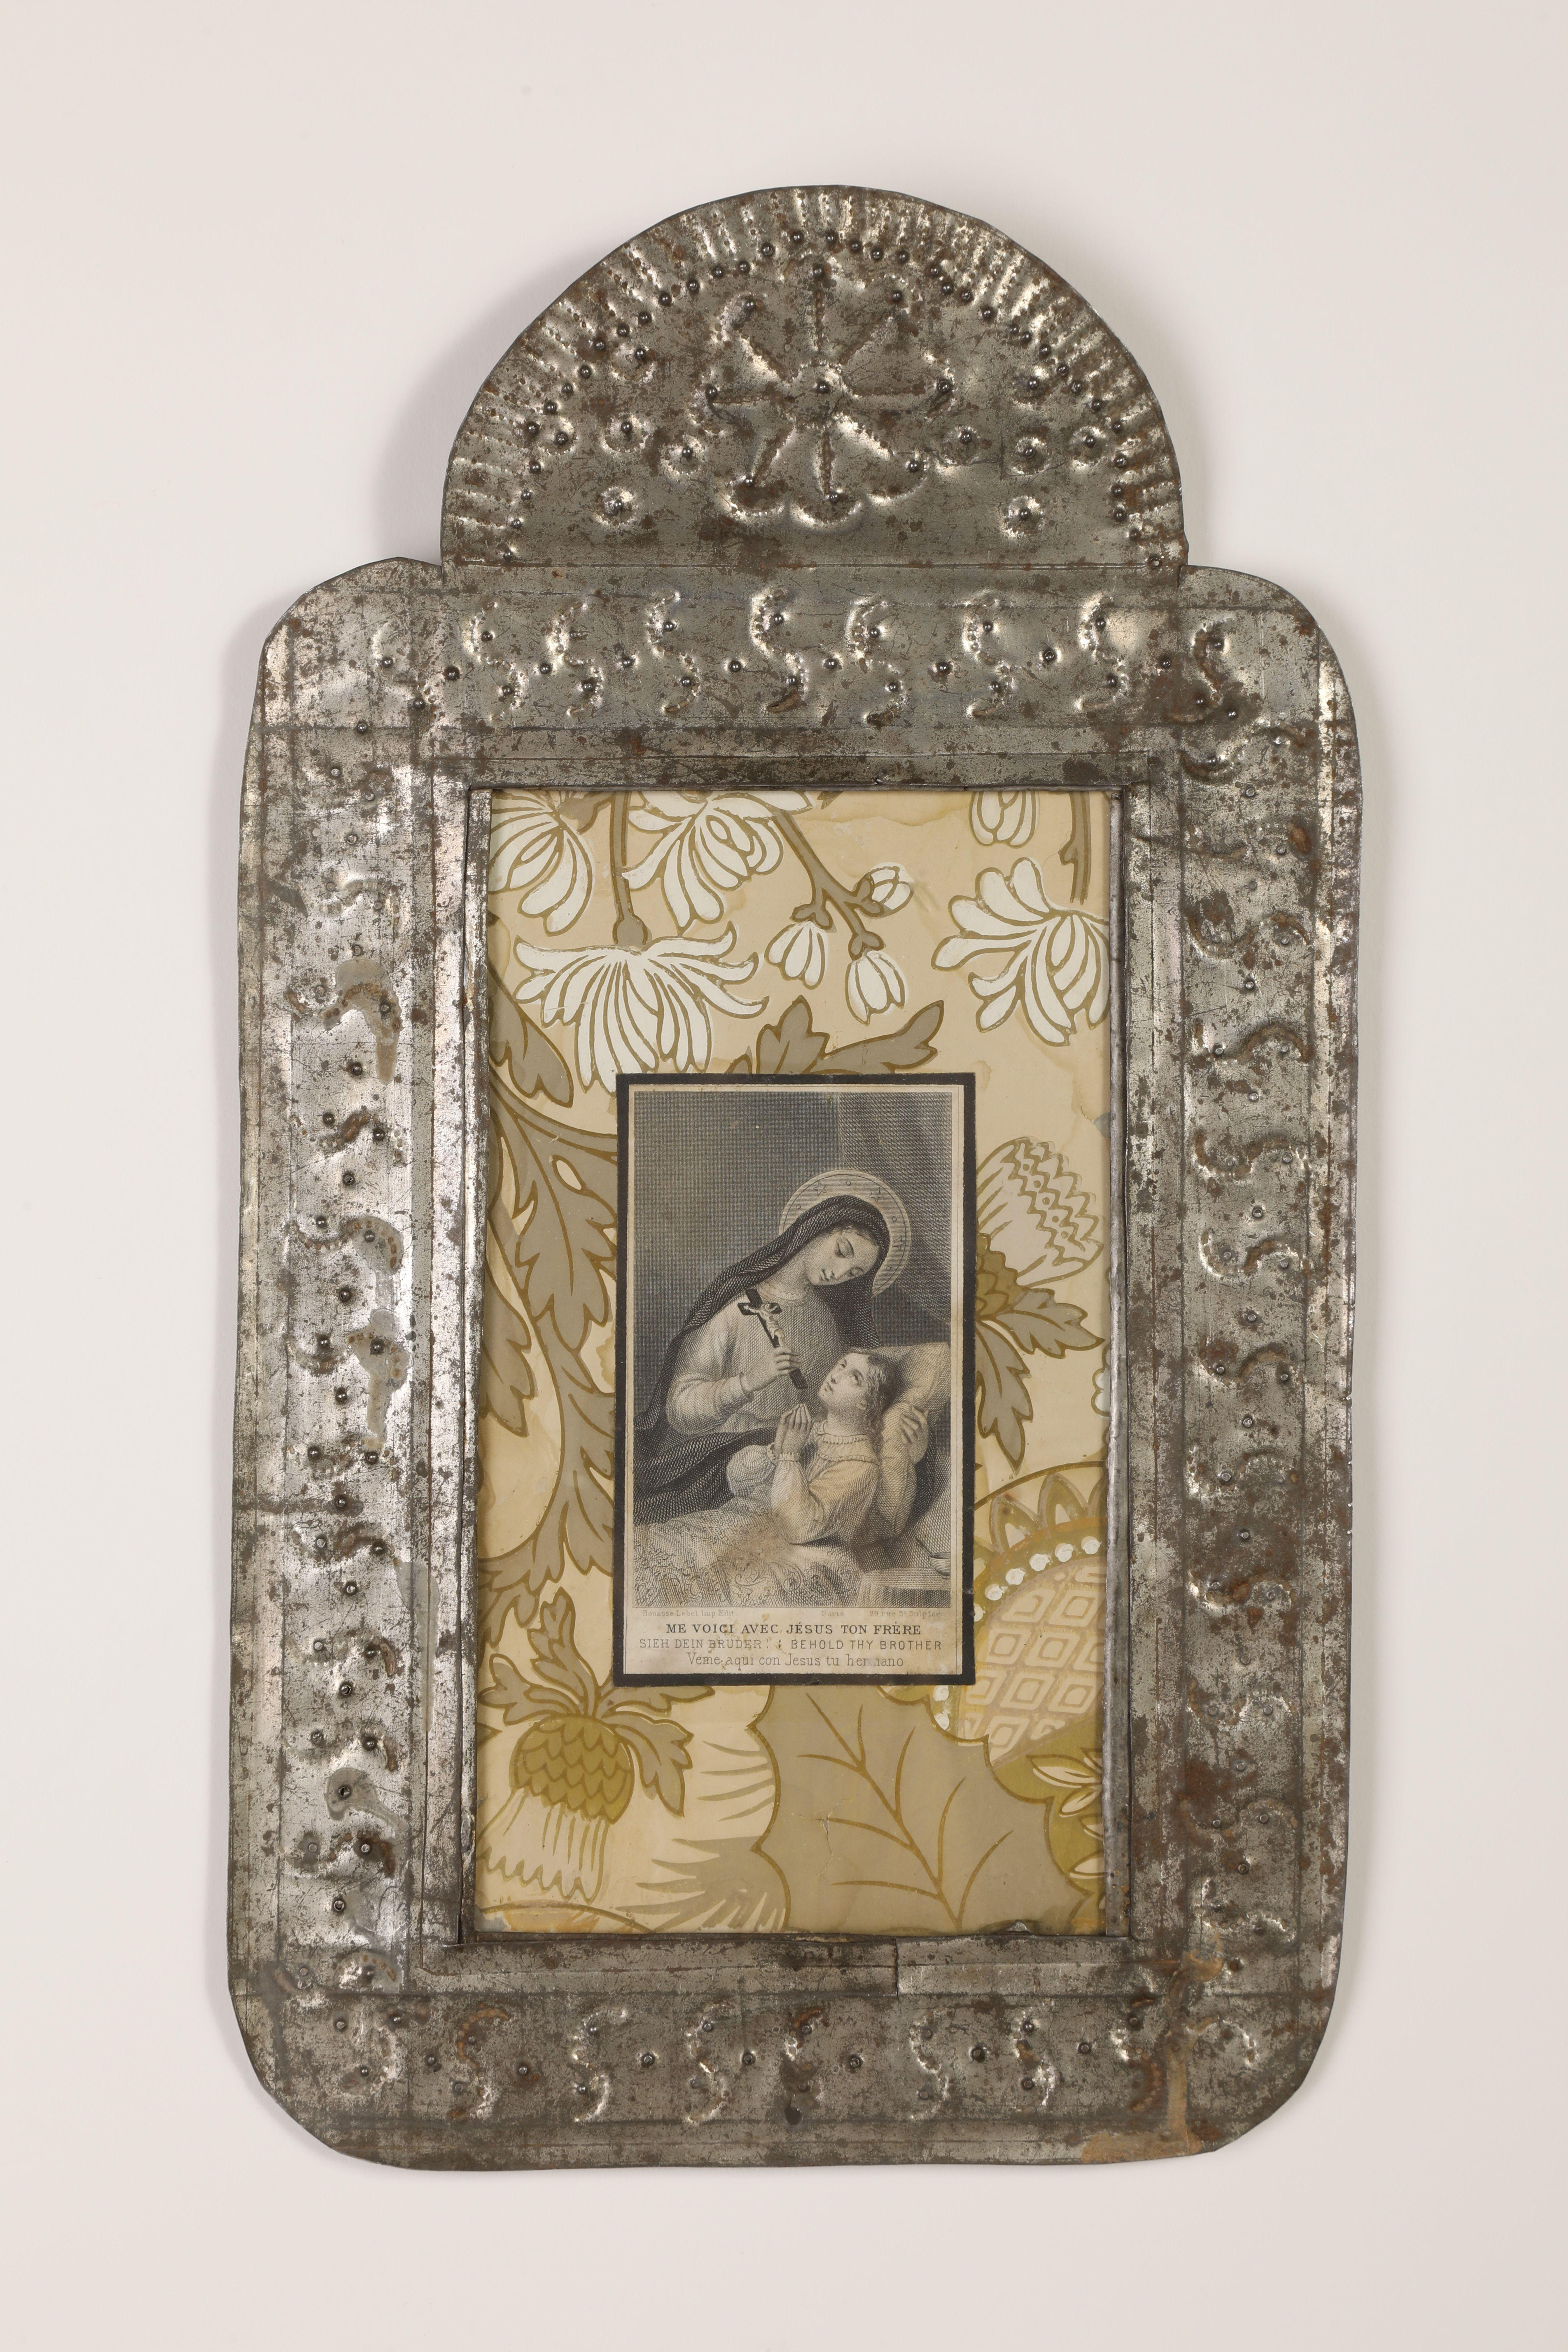 Tin Frame with Devotional Card, ca. 1870-1895